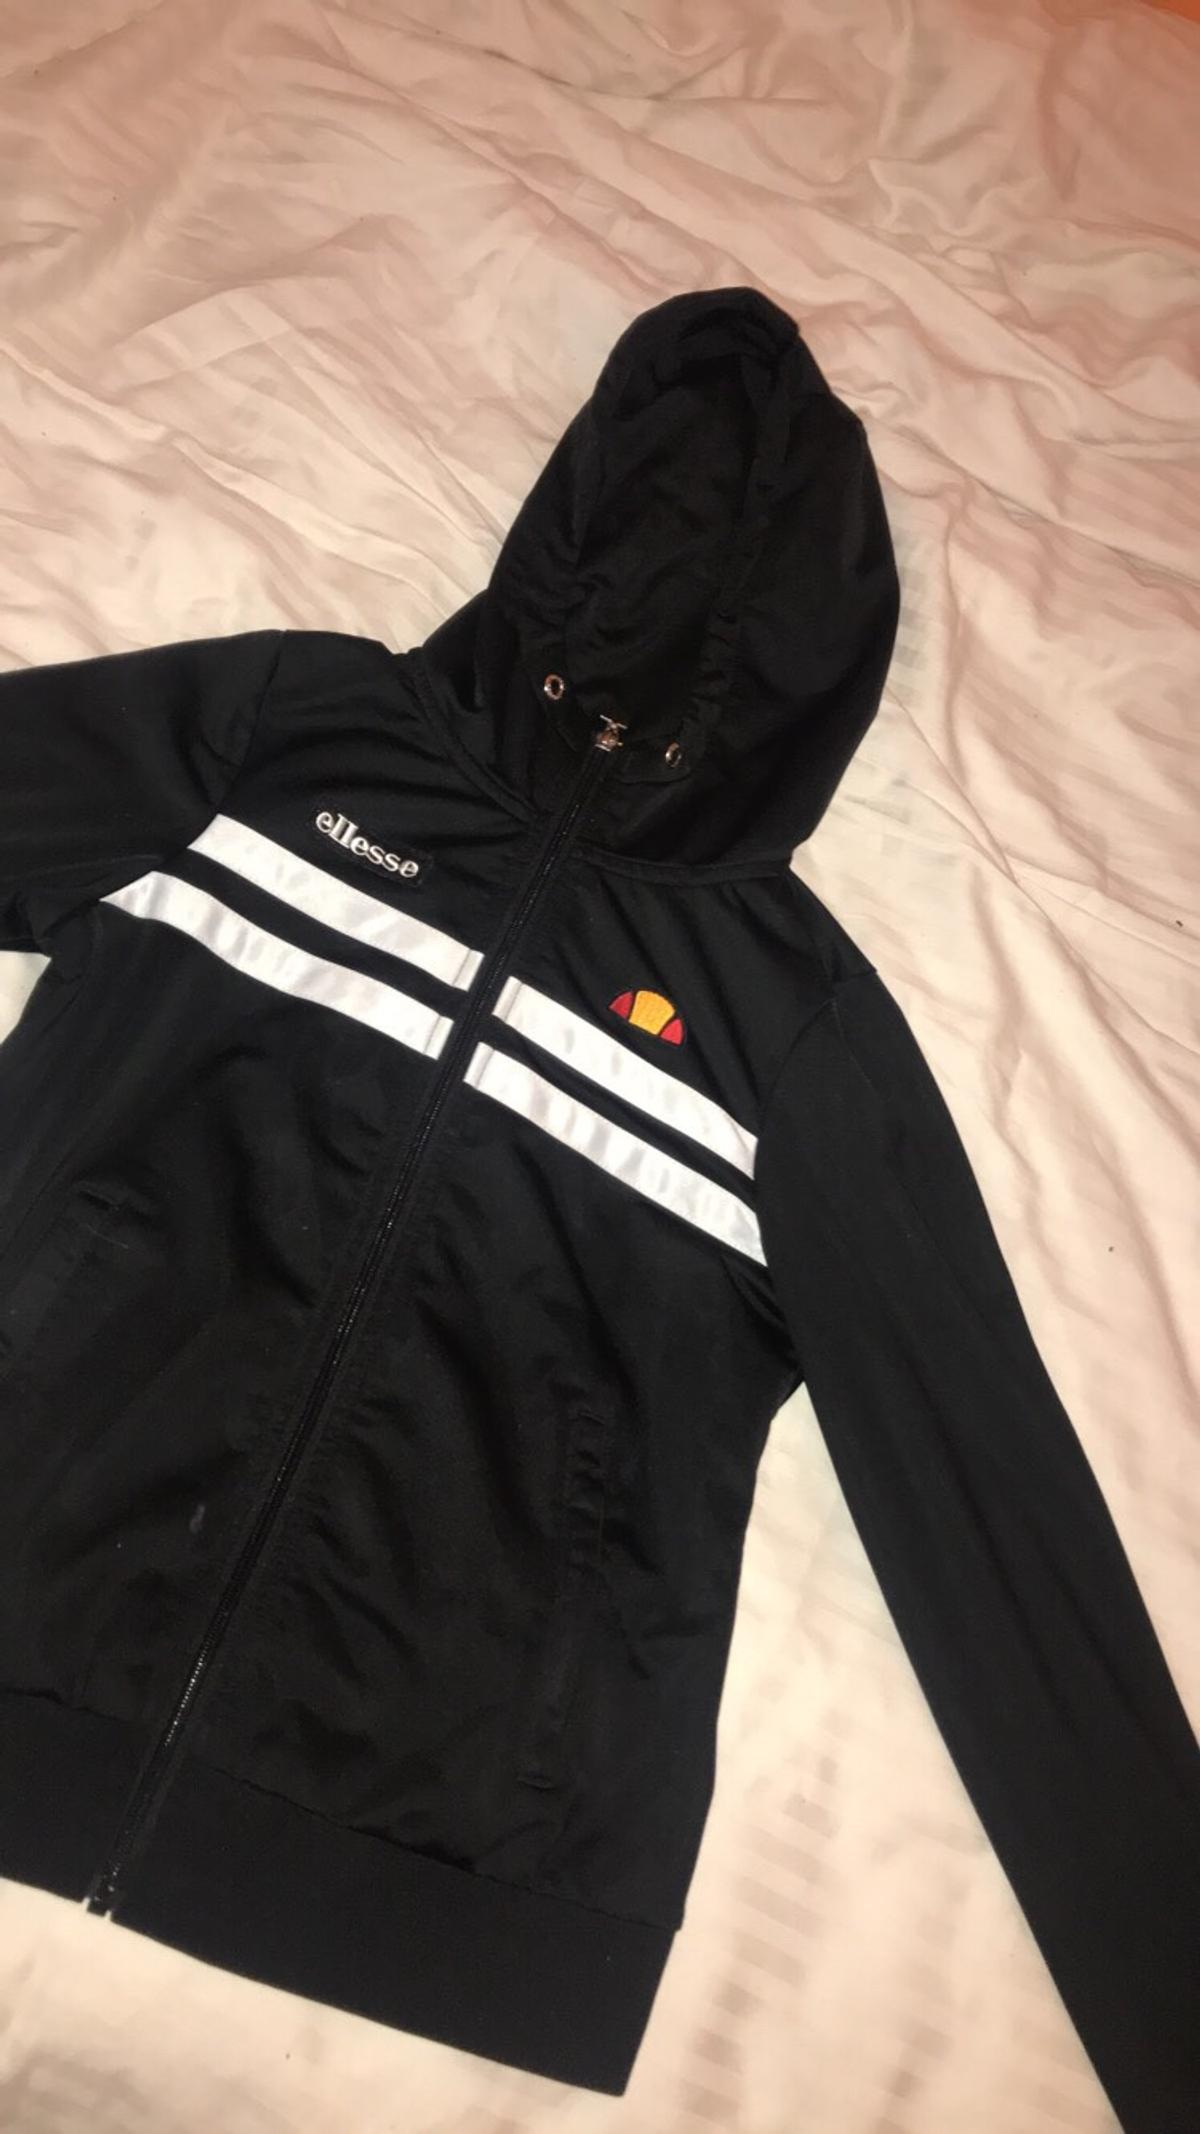 3eb645c3e9 Ellesse Zip Up Hoodie in GU46 Hart for £10.00 for sale - Shpock